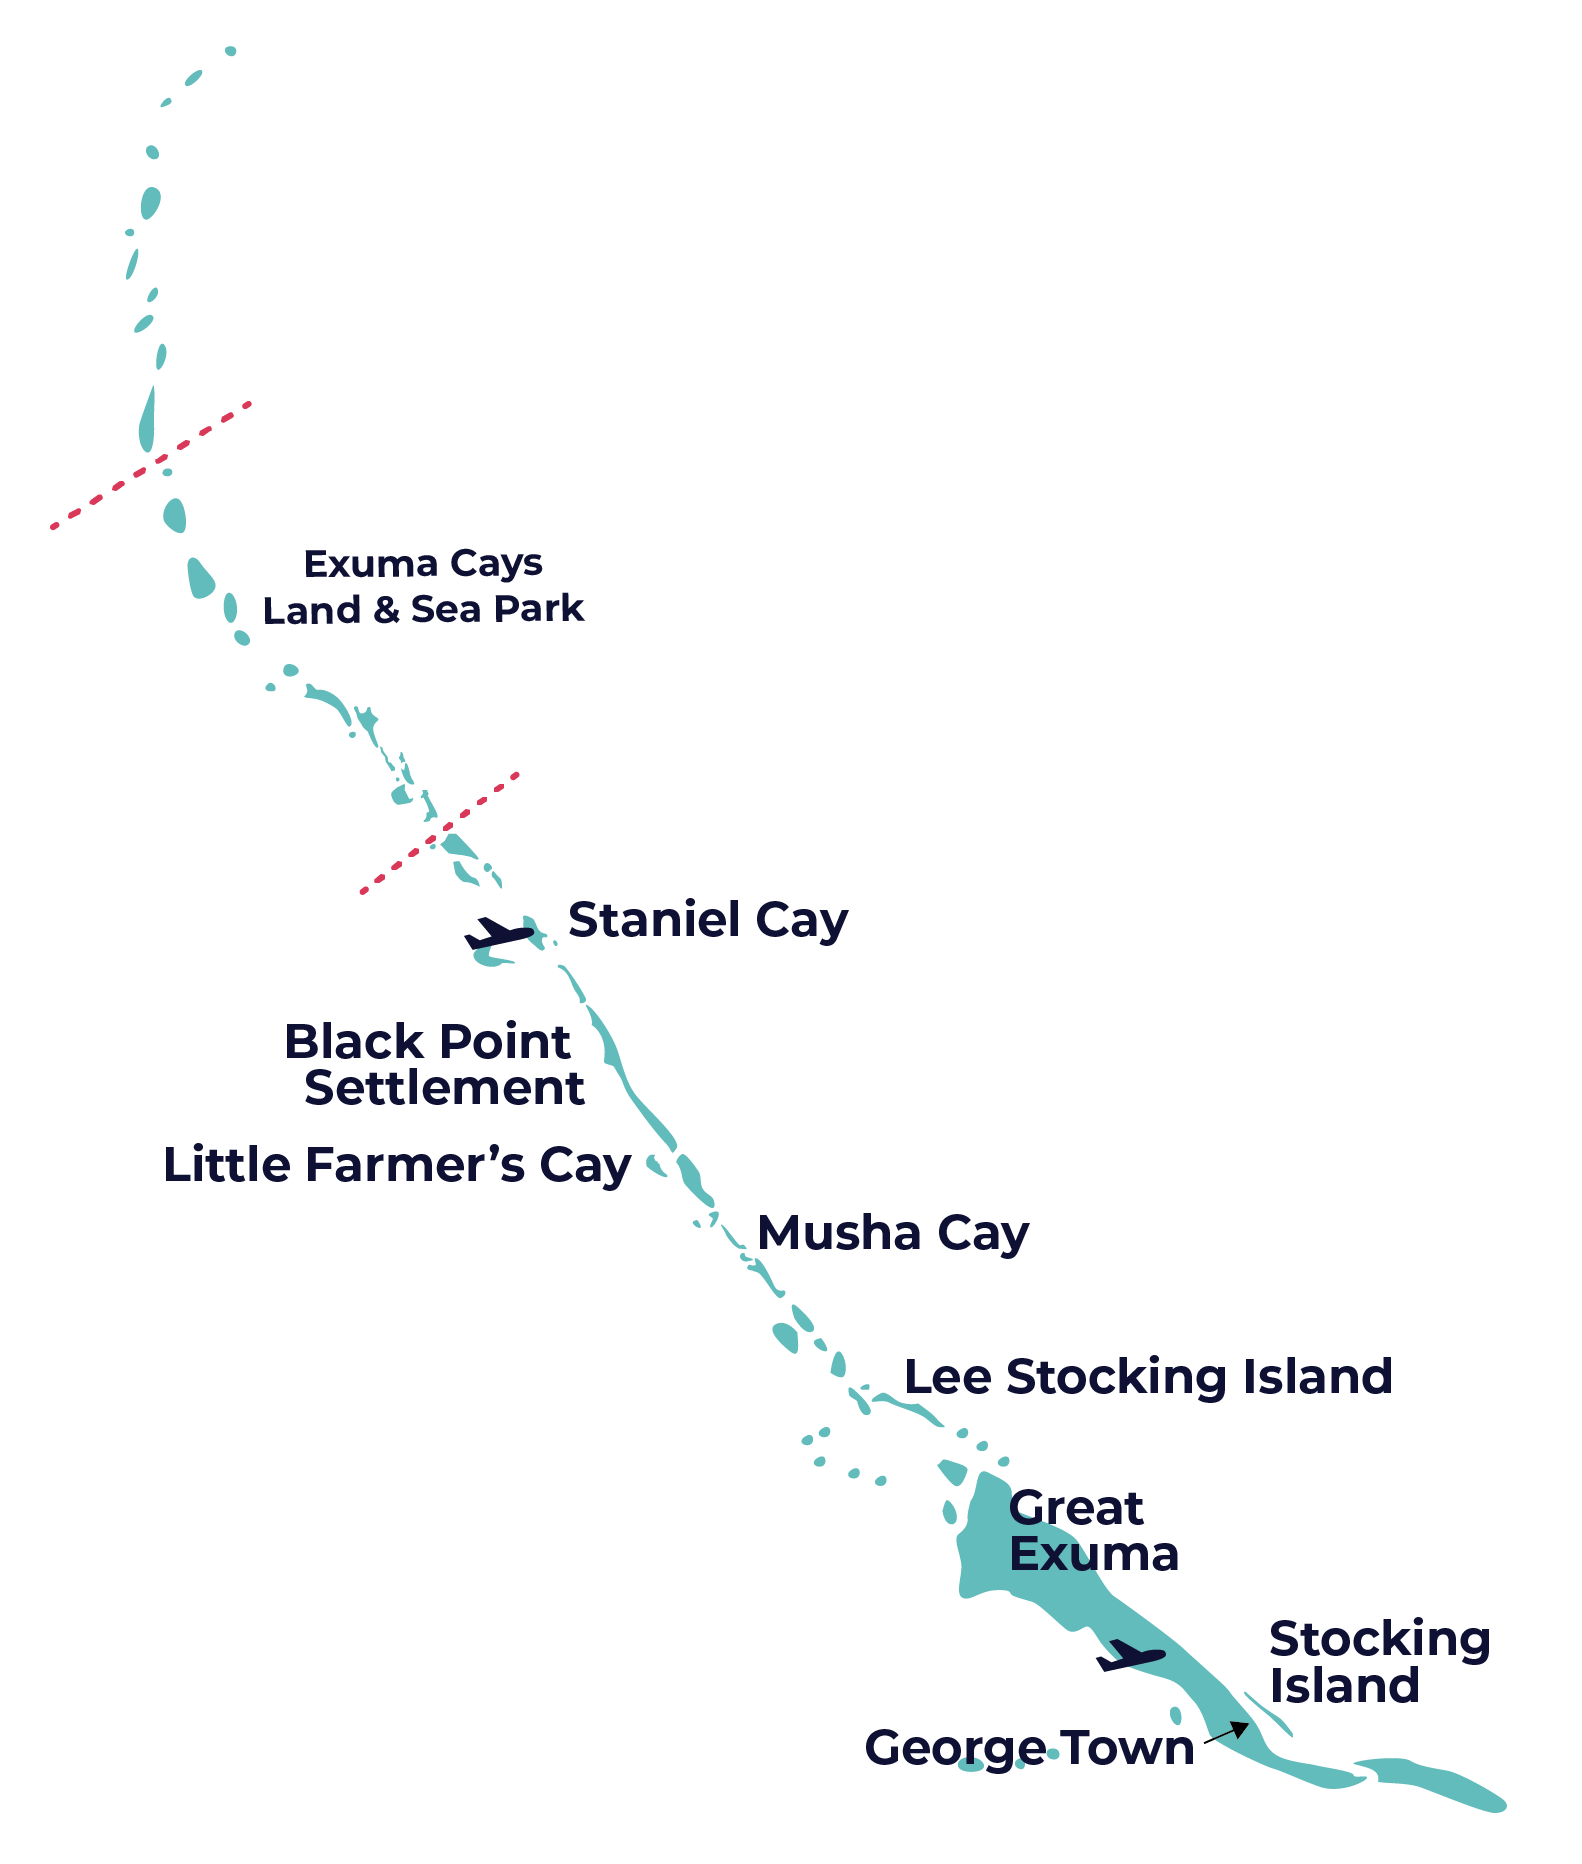 a map of the Exumas island chain showing key points along the way, including: Staniel Cay, Black Point Settlement, Little Farmer's Cay, Musha Cay, Lee Stocking Island and Great Exuma.